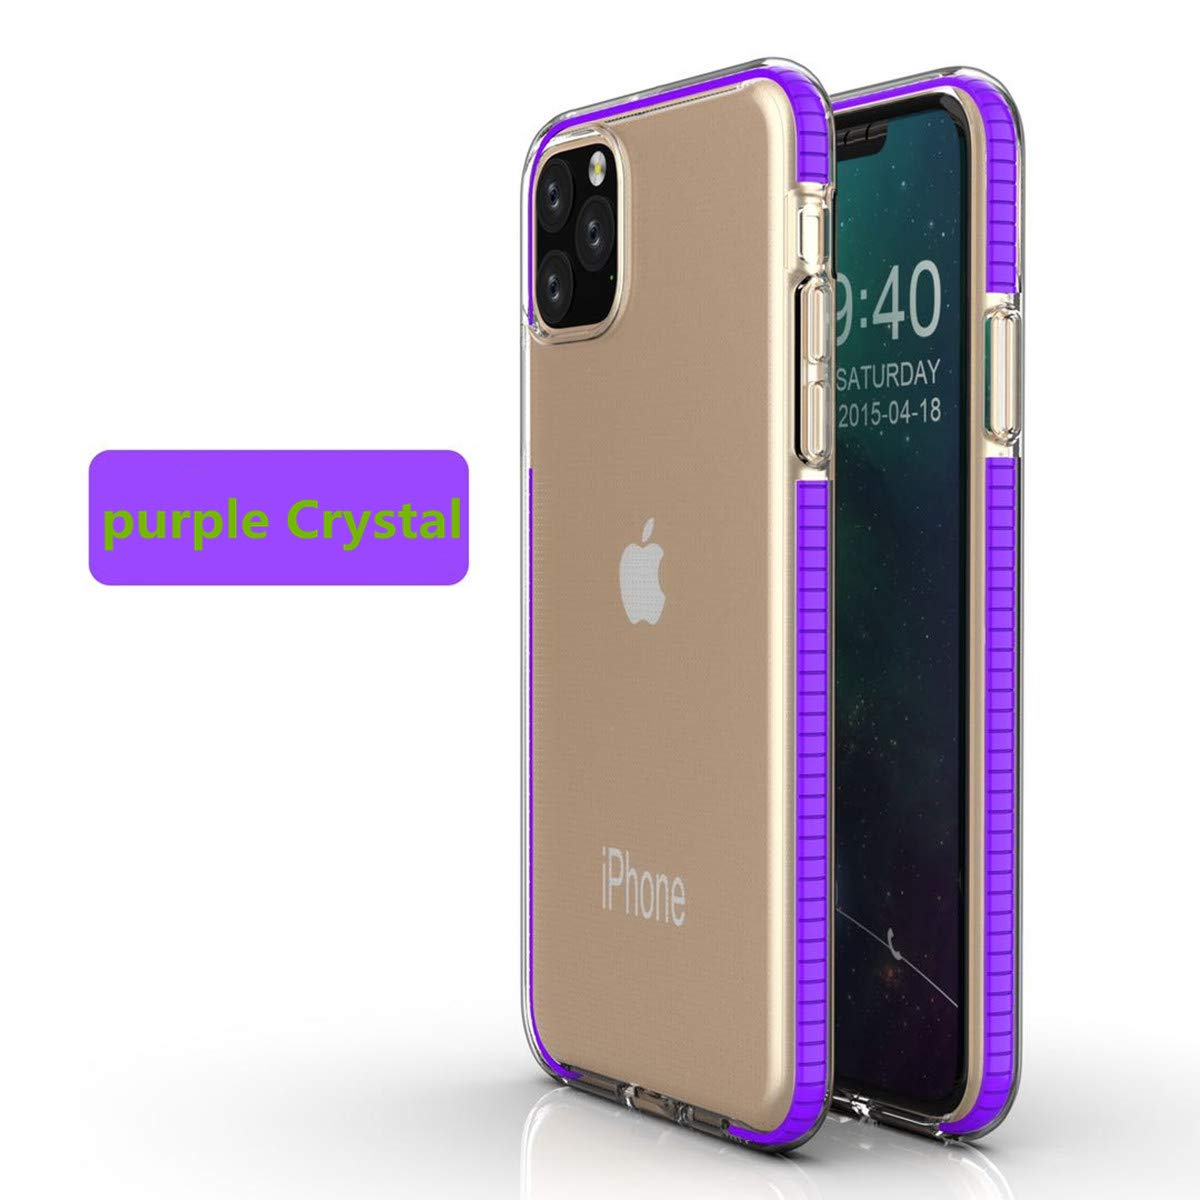 LucaSng Compatible with iPhone 11 Case, Clear iPhone 11 Cases Cover for iPhone 11 6.1 Inch Crystal Clear Case Shockproof Protection Soft Scratch-Resistant TPU Cover (Purple)